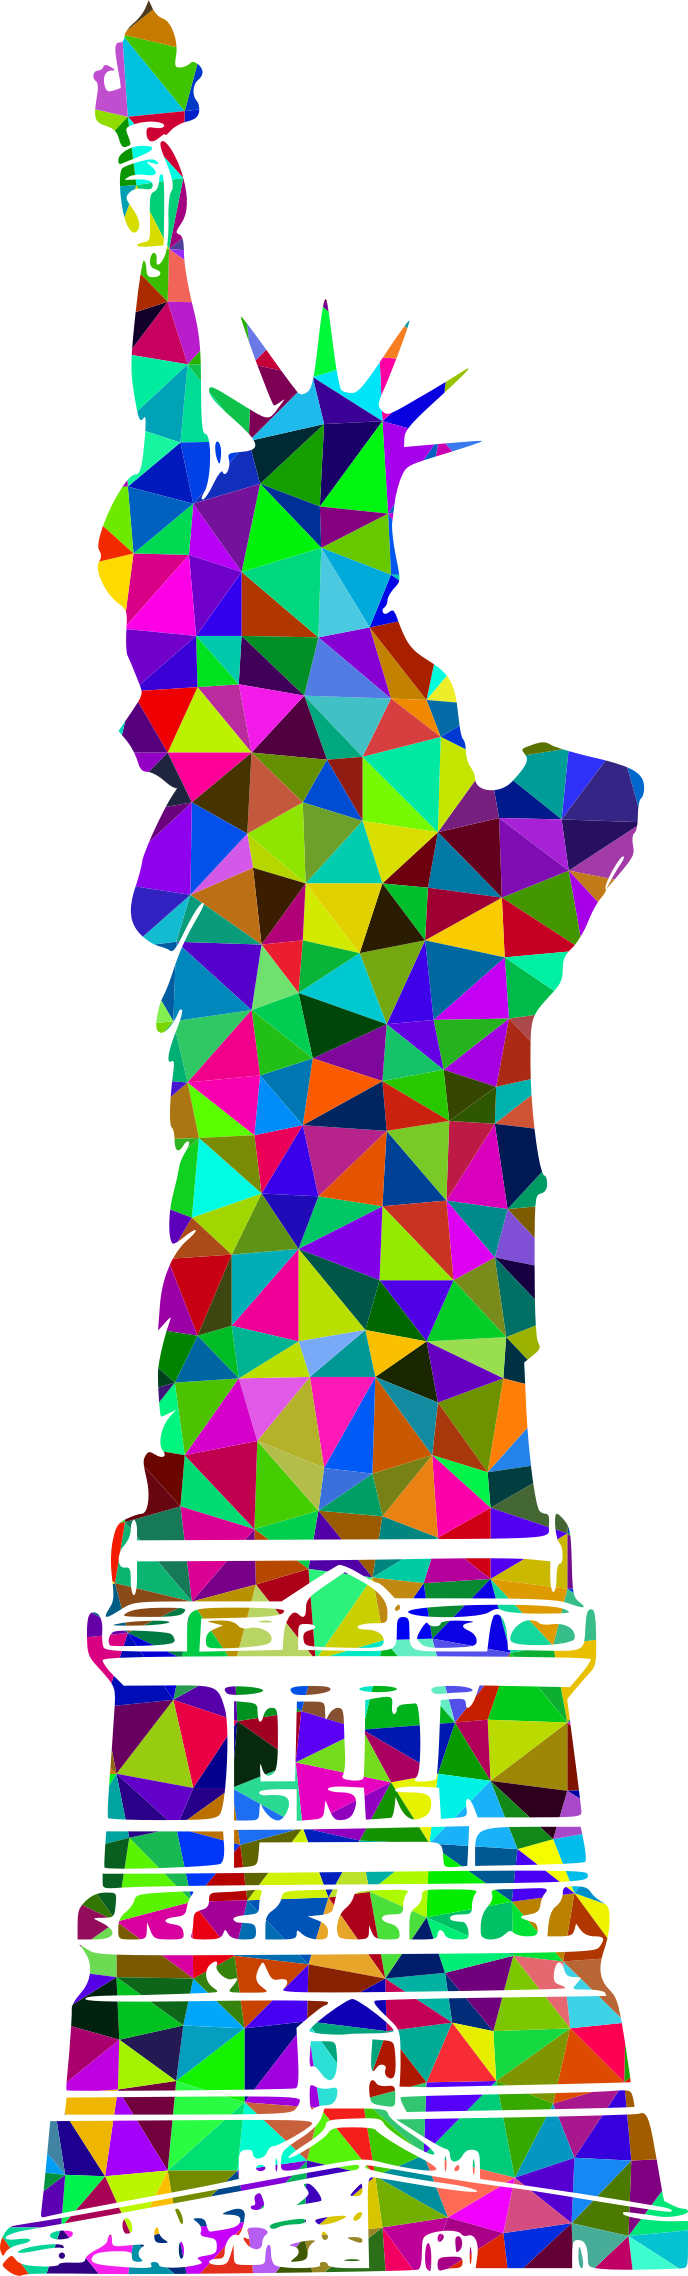 Prismatic Low Poly Statue Of Liberty by GDJ